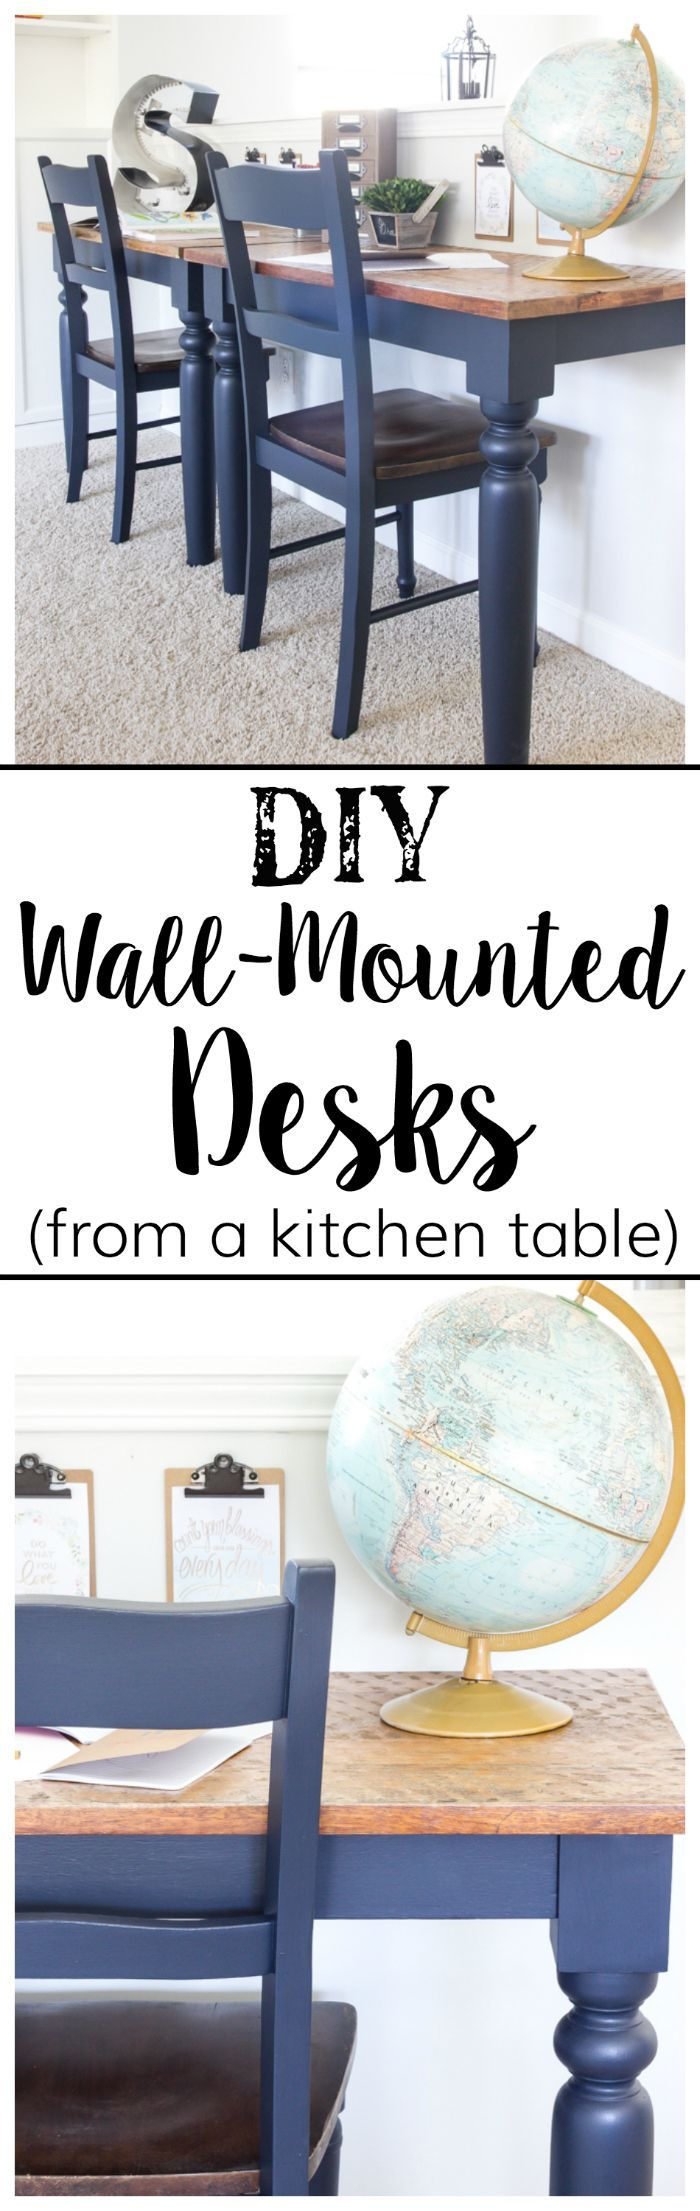 Repurposed Kitchen Table Turned Wall-Mounted Desks   blesserhouse.com - How to use a repurposed kitchen table to cut in half and make wall-mounted desks for a playroom makeover with Fusion Mineral Paint Midnight Blue. #sponsored popular pin